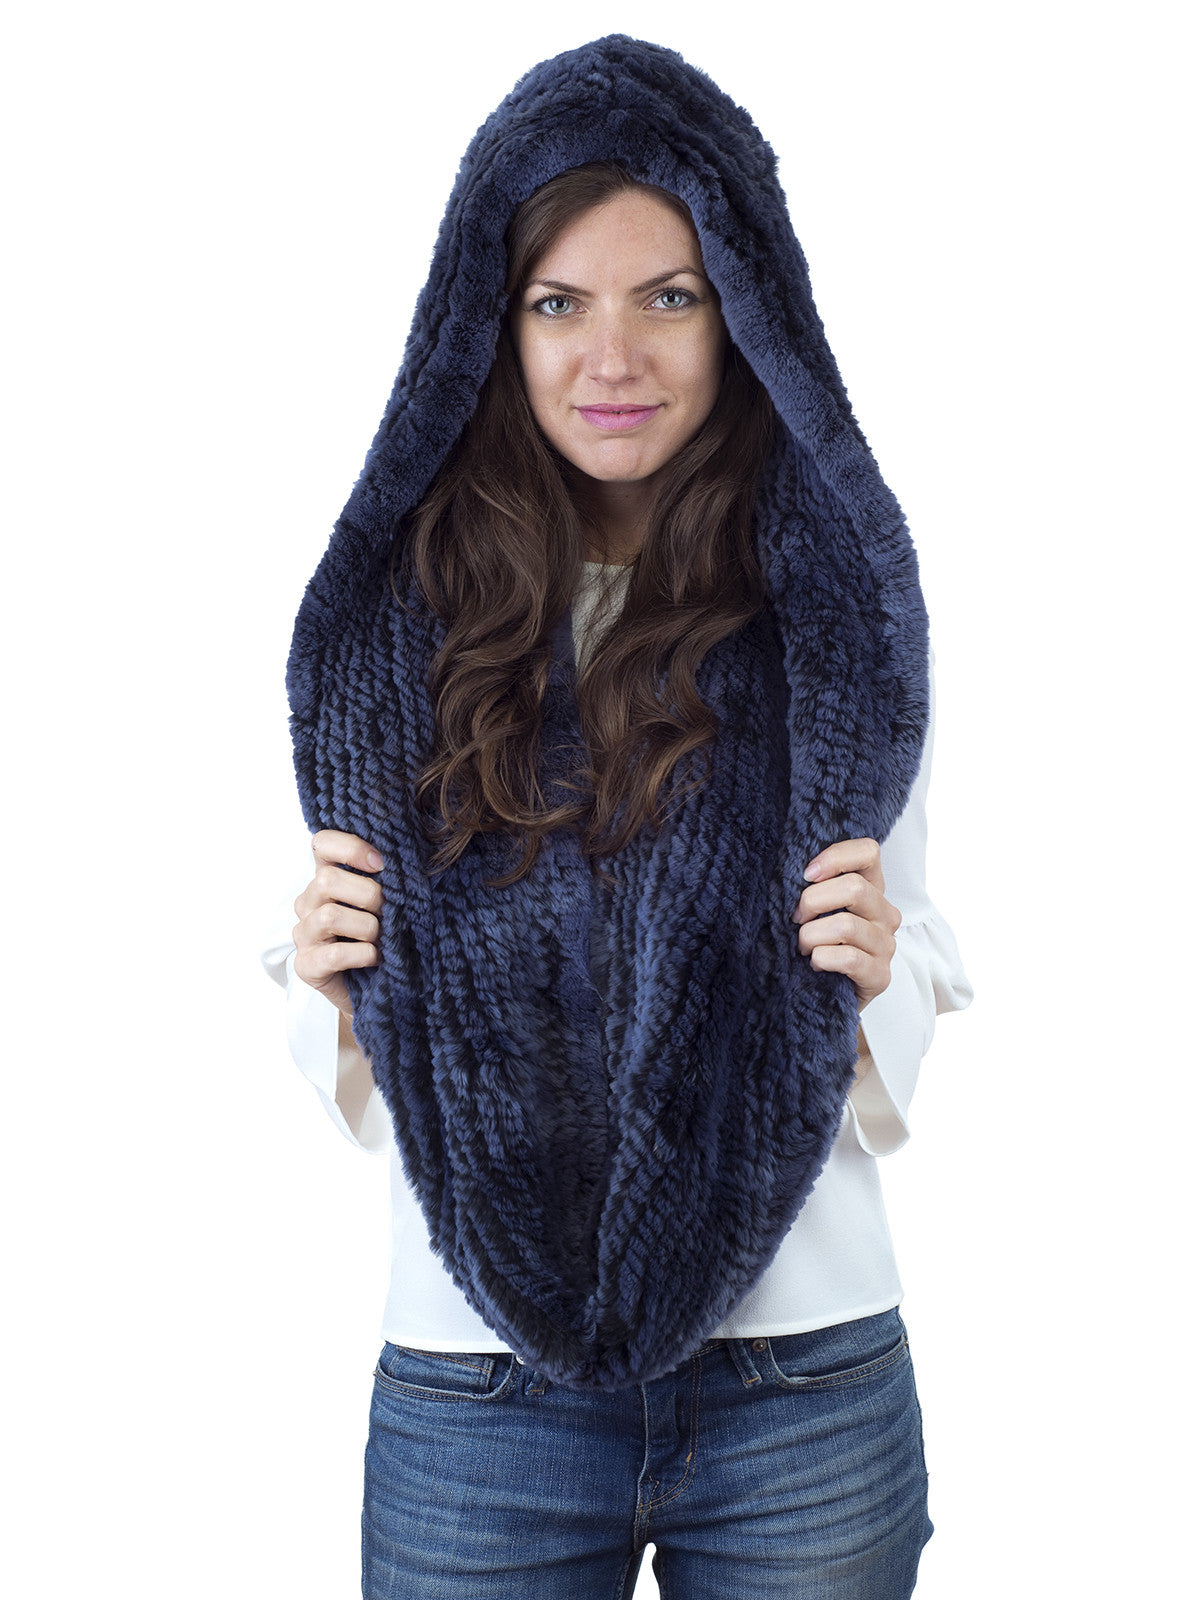 Blue Rex Rabbit Hood with Wide Infinity Scarf